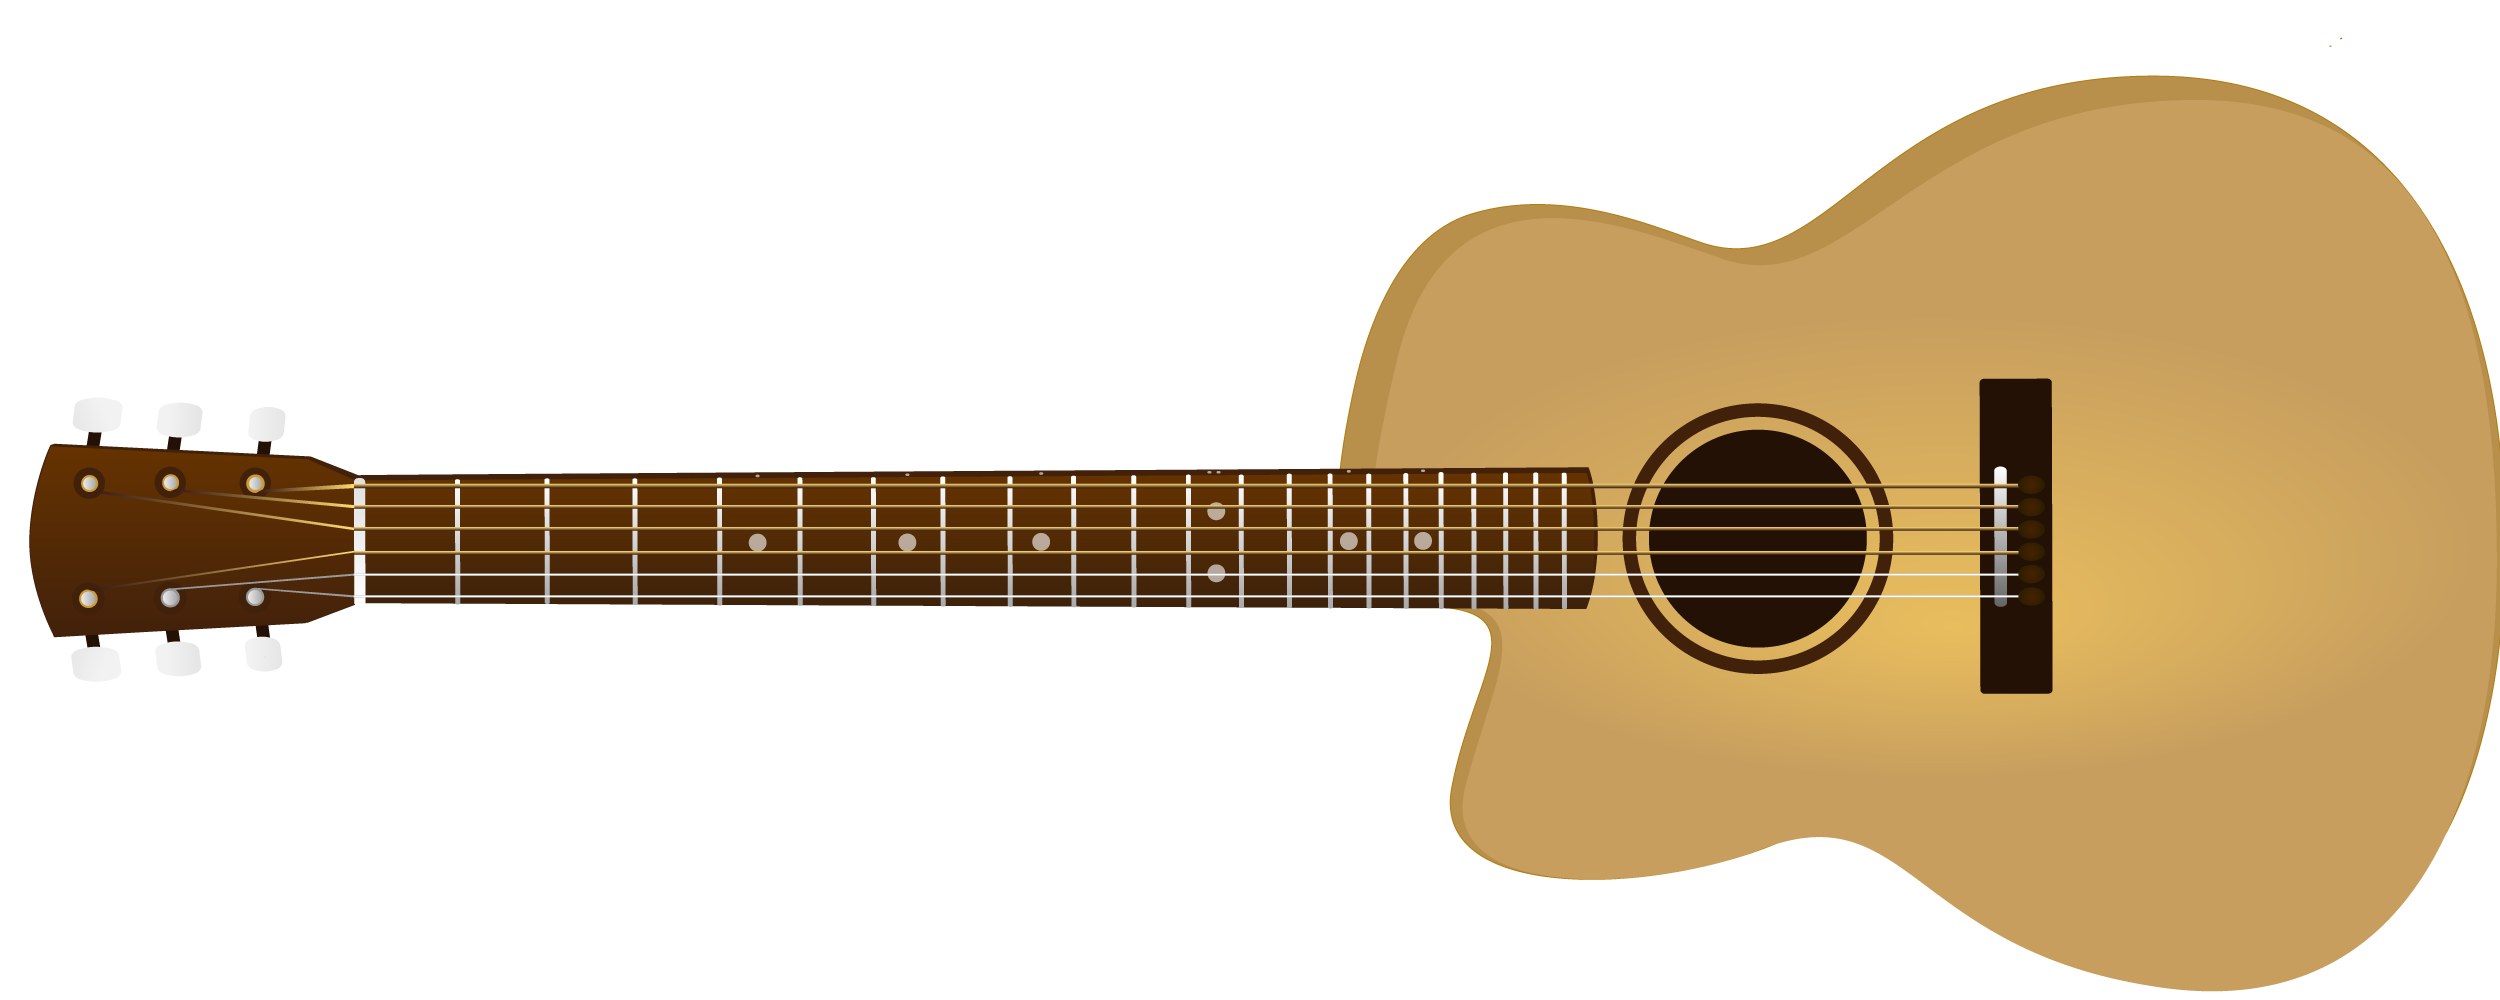 Free Guitar Pictures image #46329